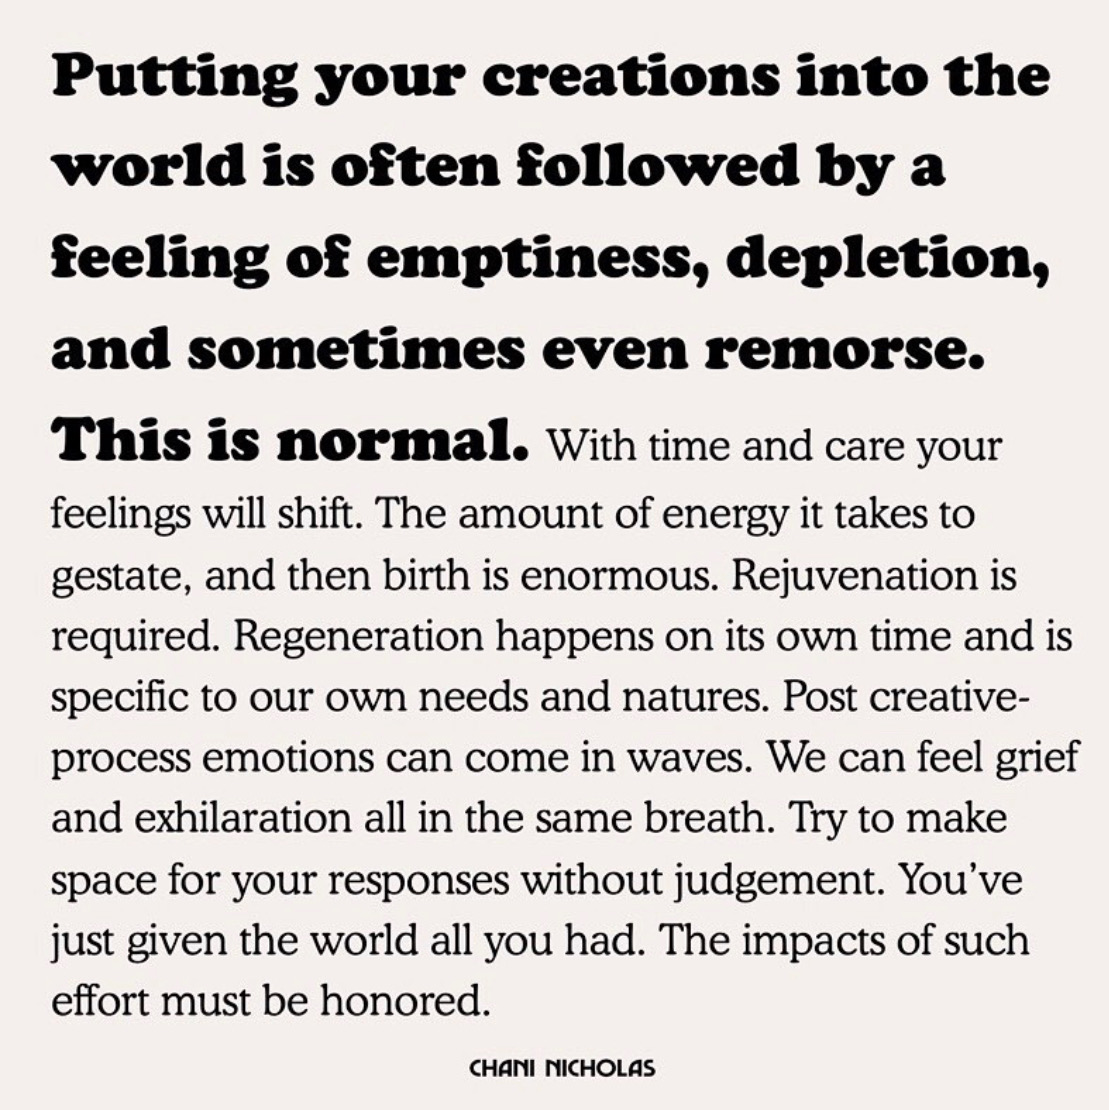 A friend shared this with me while I was in the midst of recording my album. (It couldn't have come at a better time.) Sharing it in hopes it might resonate with someone else.  #creatives #artists #musicians pic.twitter.com/rdgmqweDEP